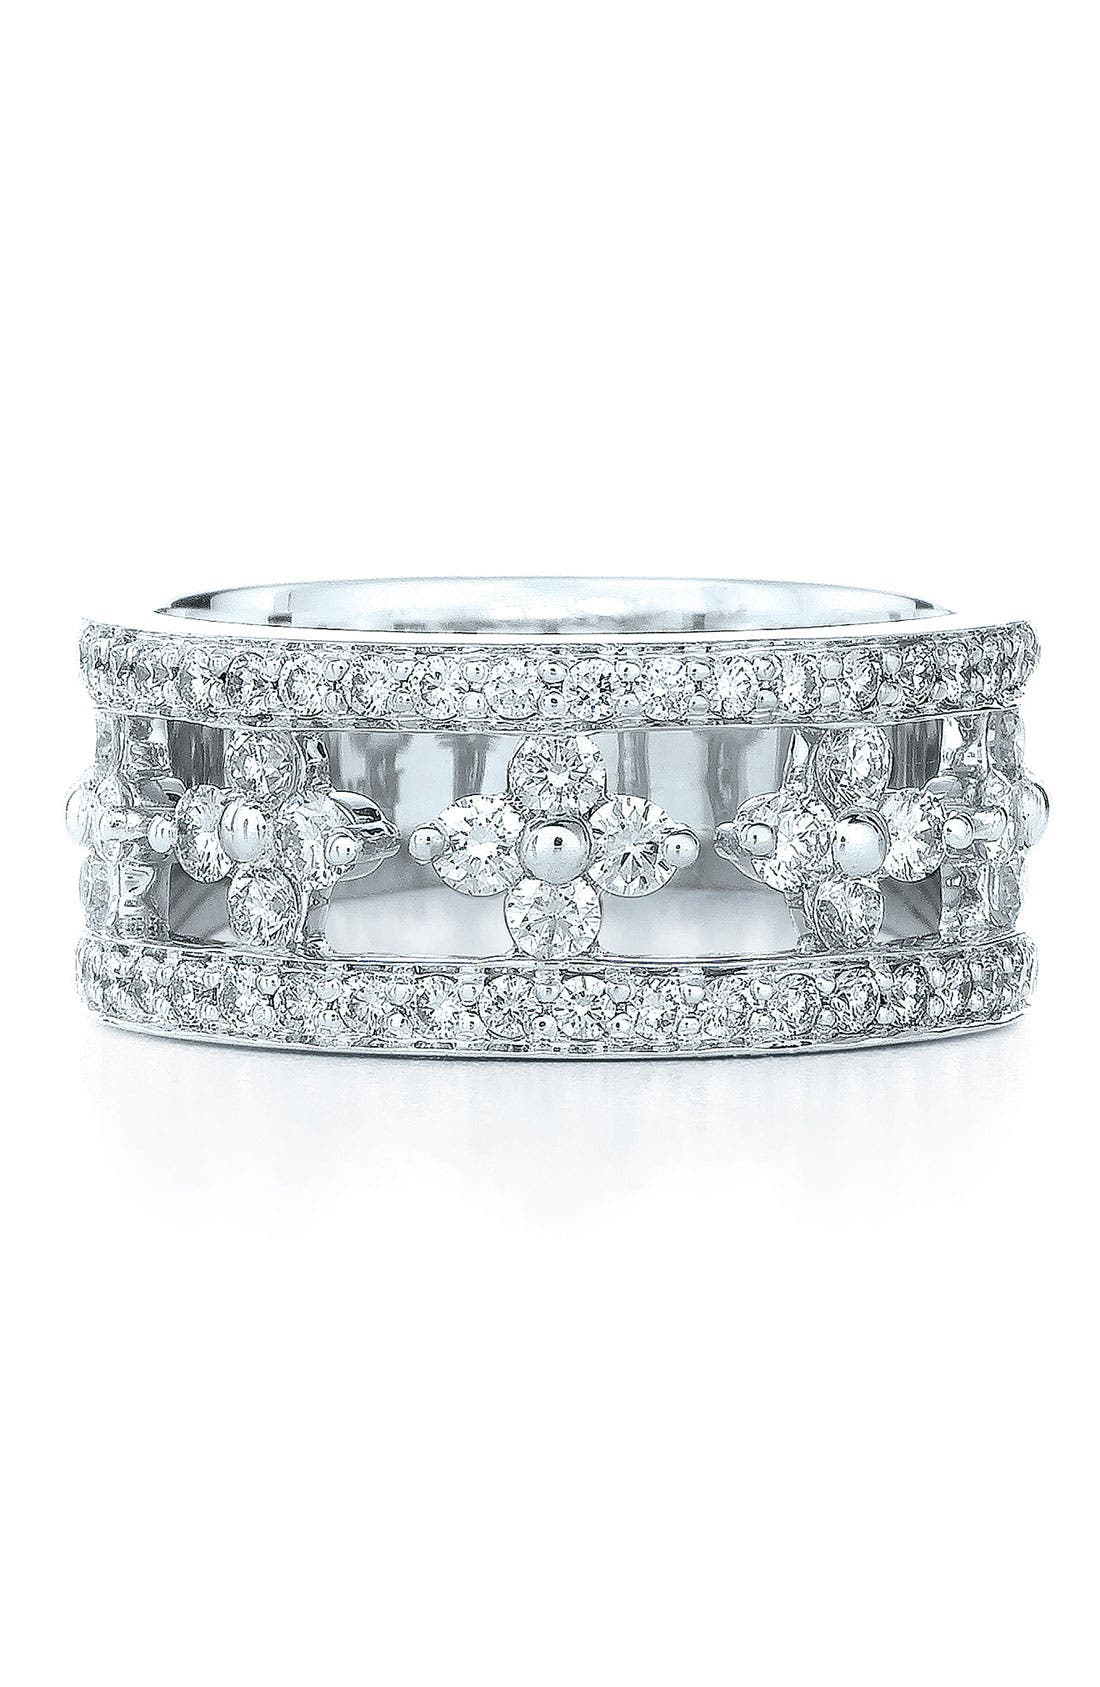 'Jasmine' Floral White Gold & Diamond Ring,                             Main thumbnail 1, color,                             WHITE GOLD